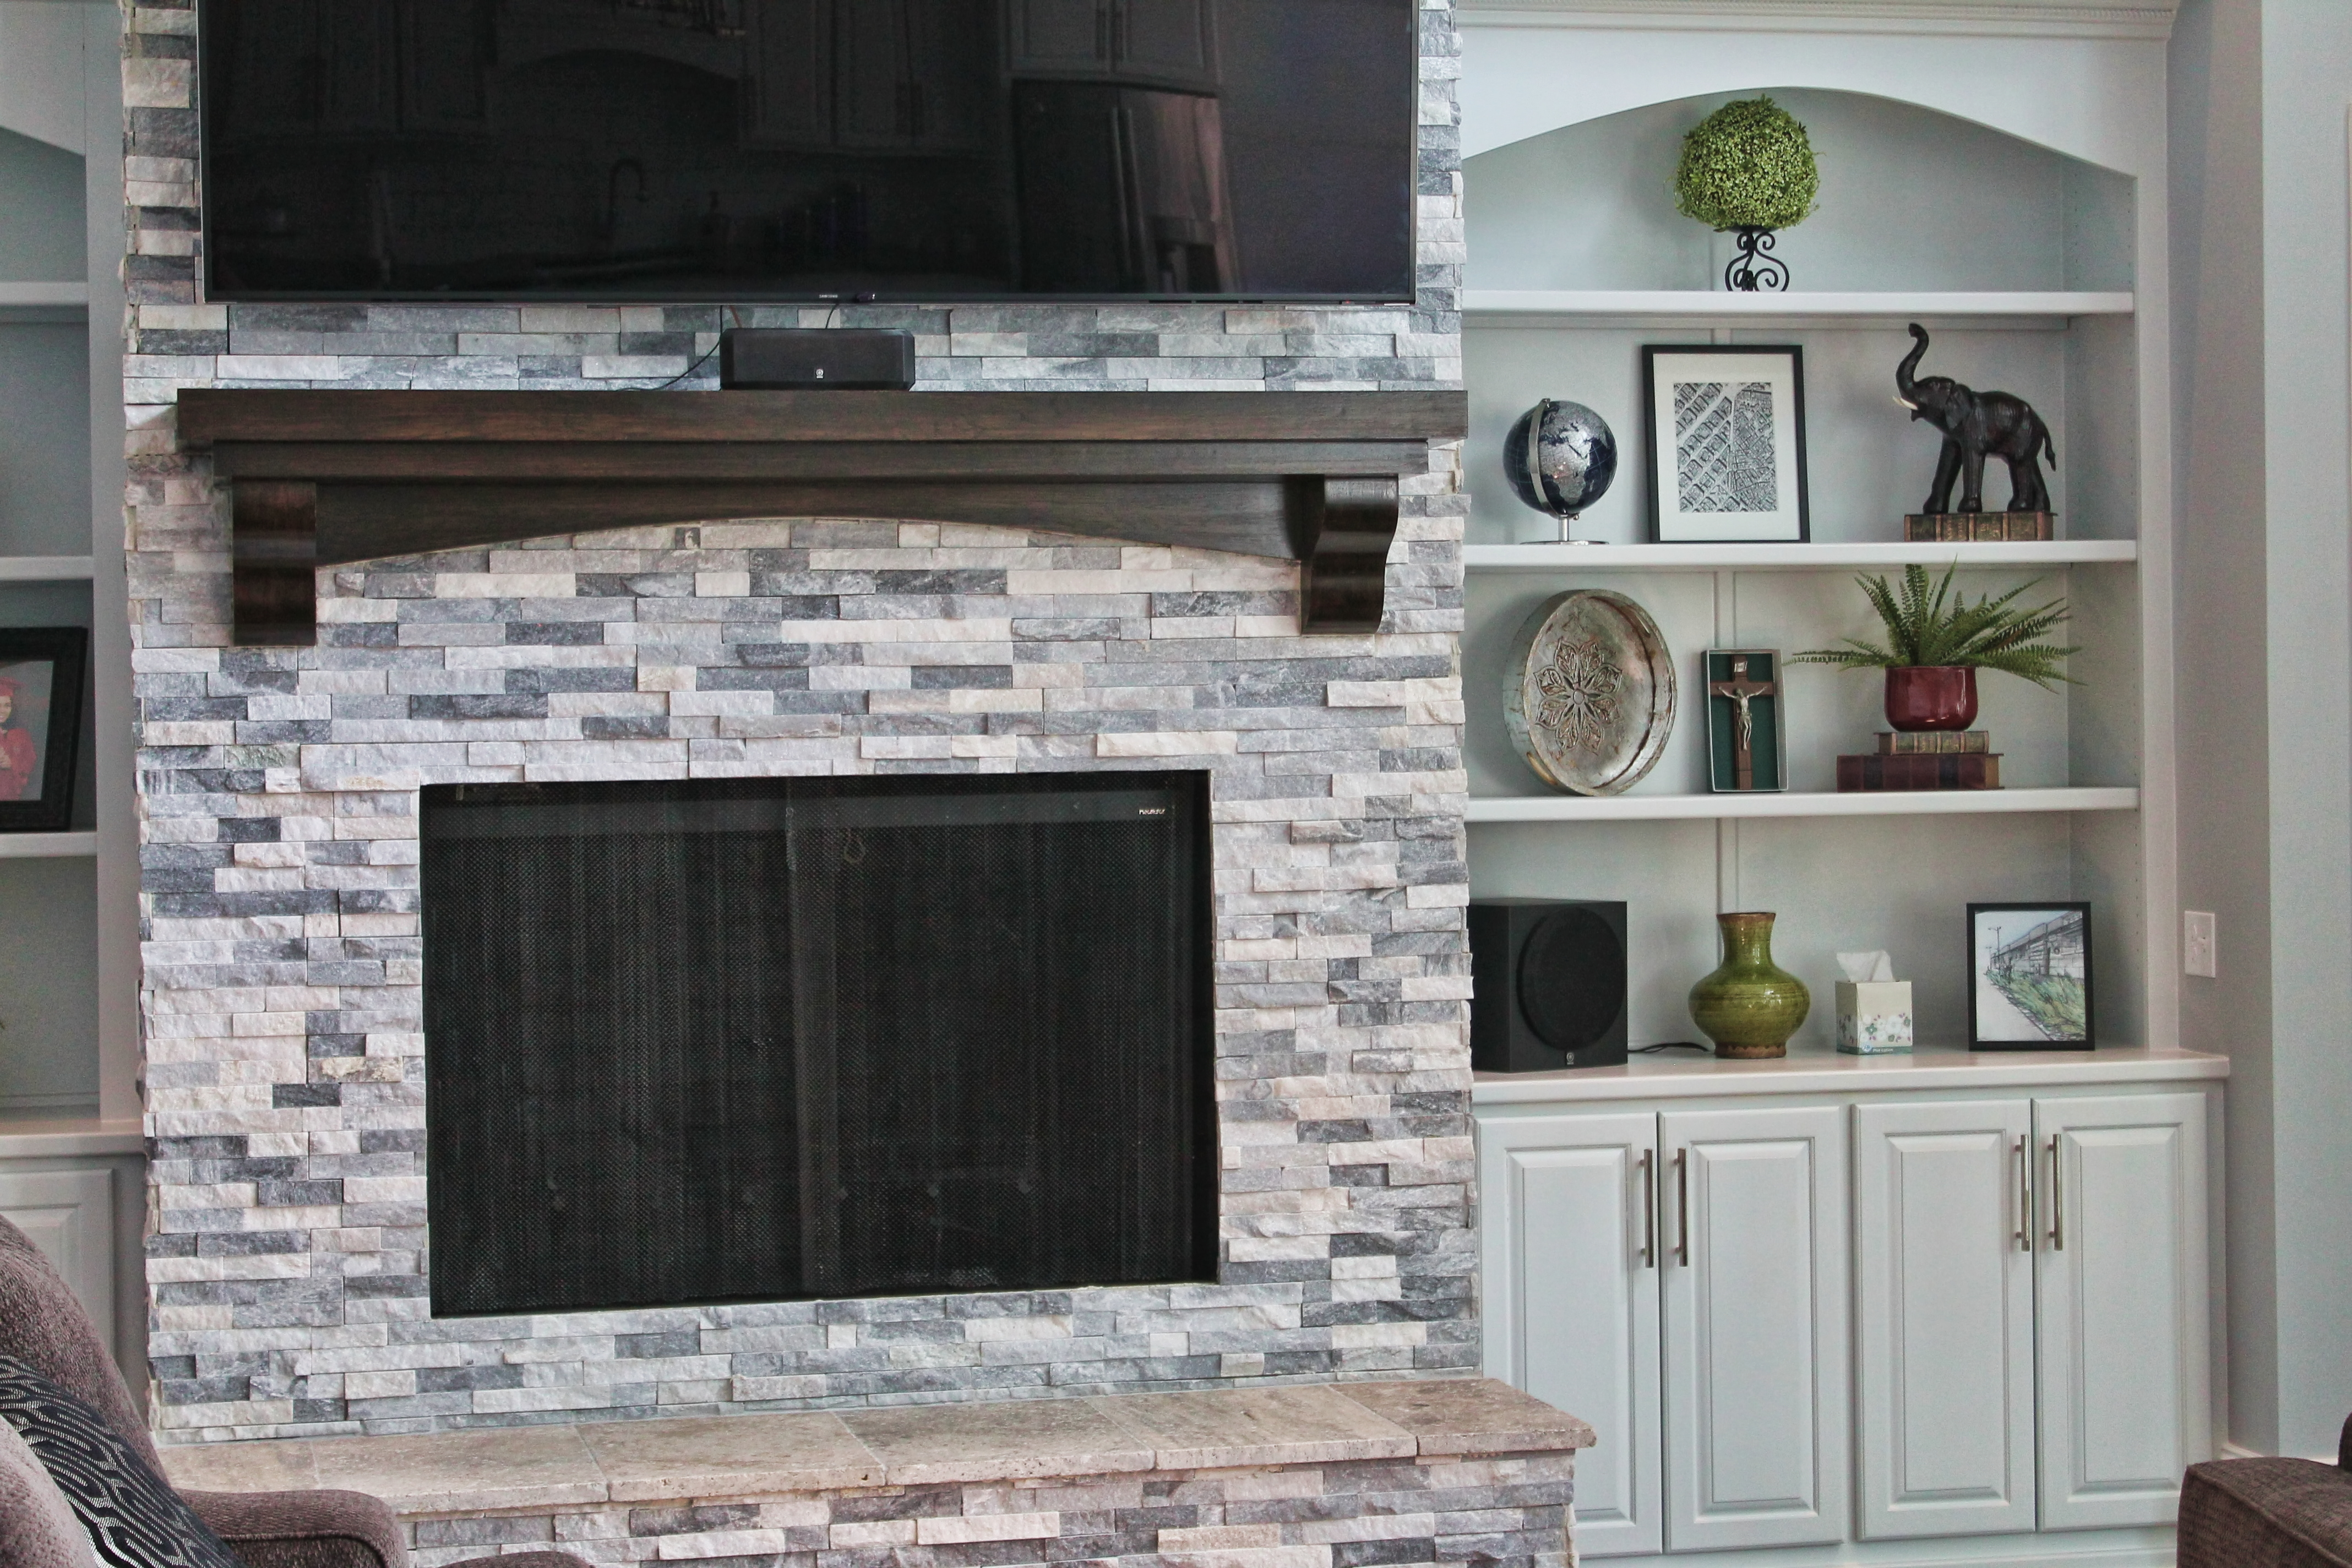 Fireplace Clad with Alaska Gray Stacked Stone/Ledgerstone (Sold by Acadiana Stone LLC - Installed by Contractor)